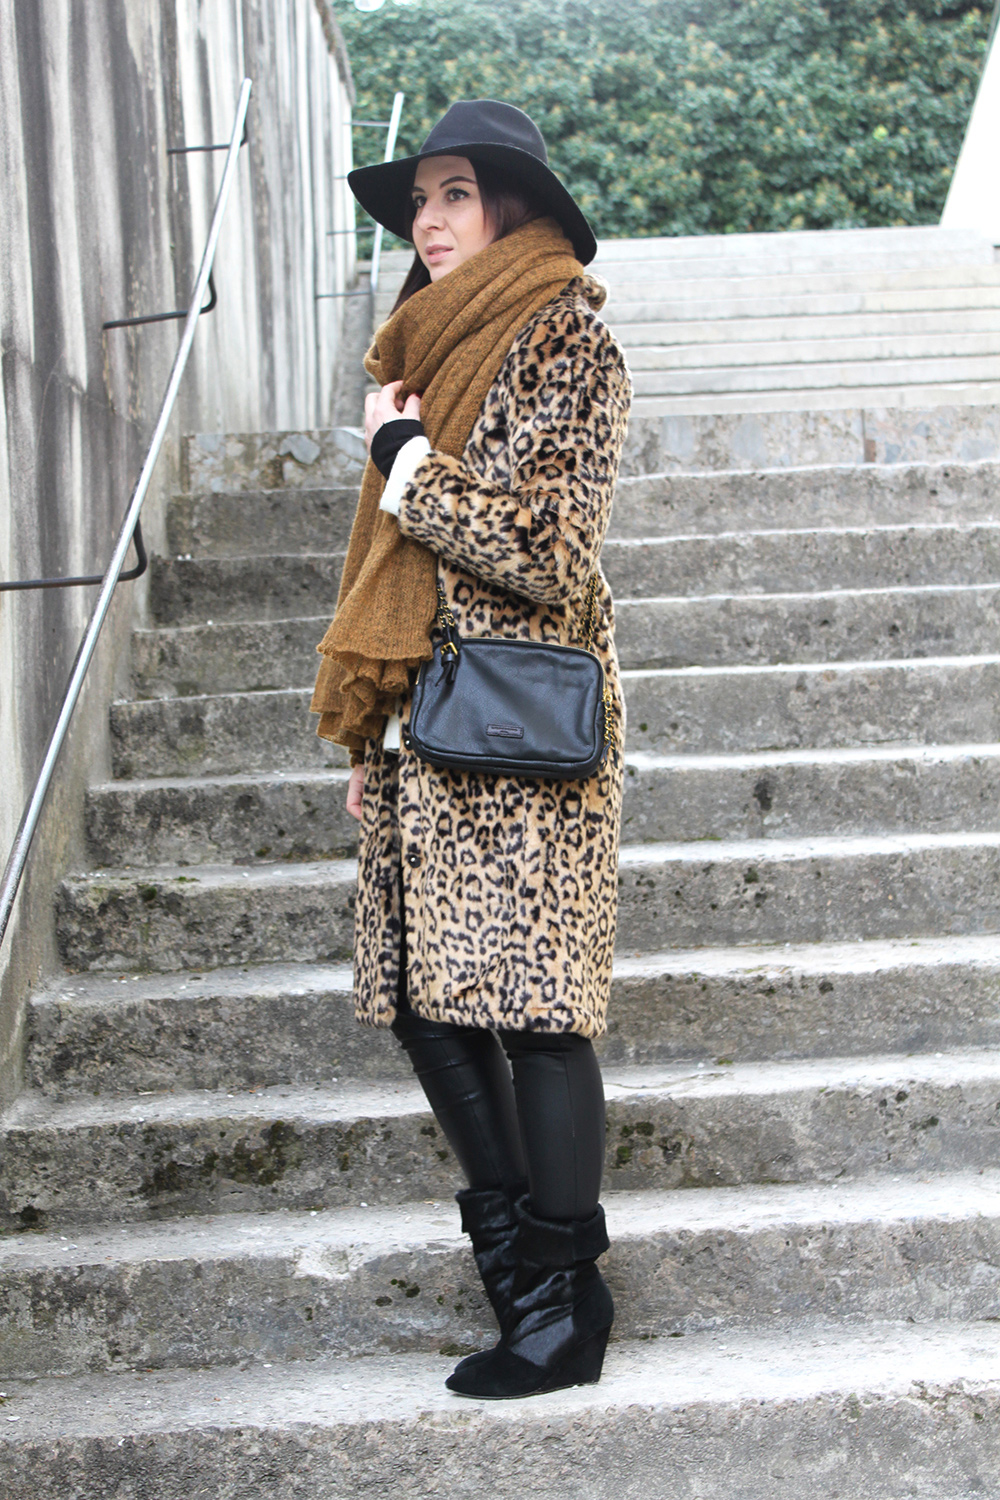 who is mocca, blogger tirol, fashionblog, xl schal tobacco asos, leo mantel forever21, wedges highheels stiefelette pony isabel marant lookalike, topshop schlapphut, lederhose, liebeskind umhängetasche, oversize pullover zara primark